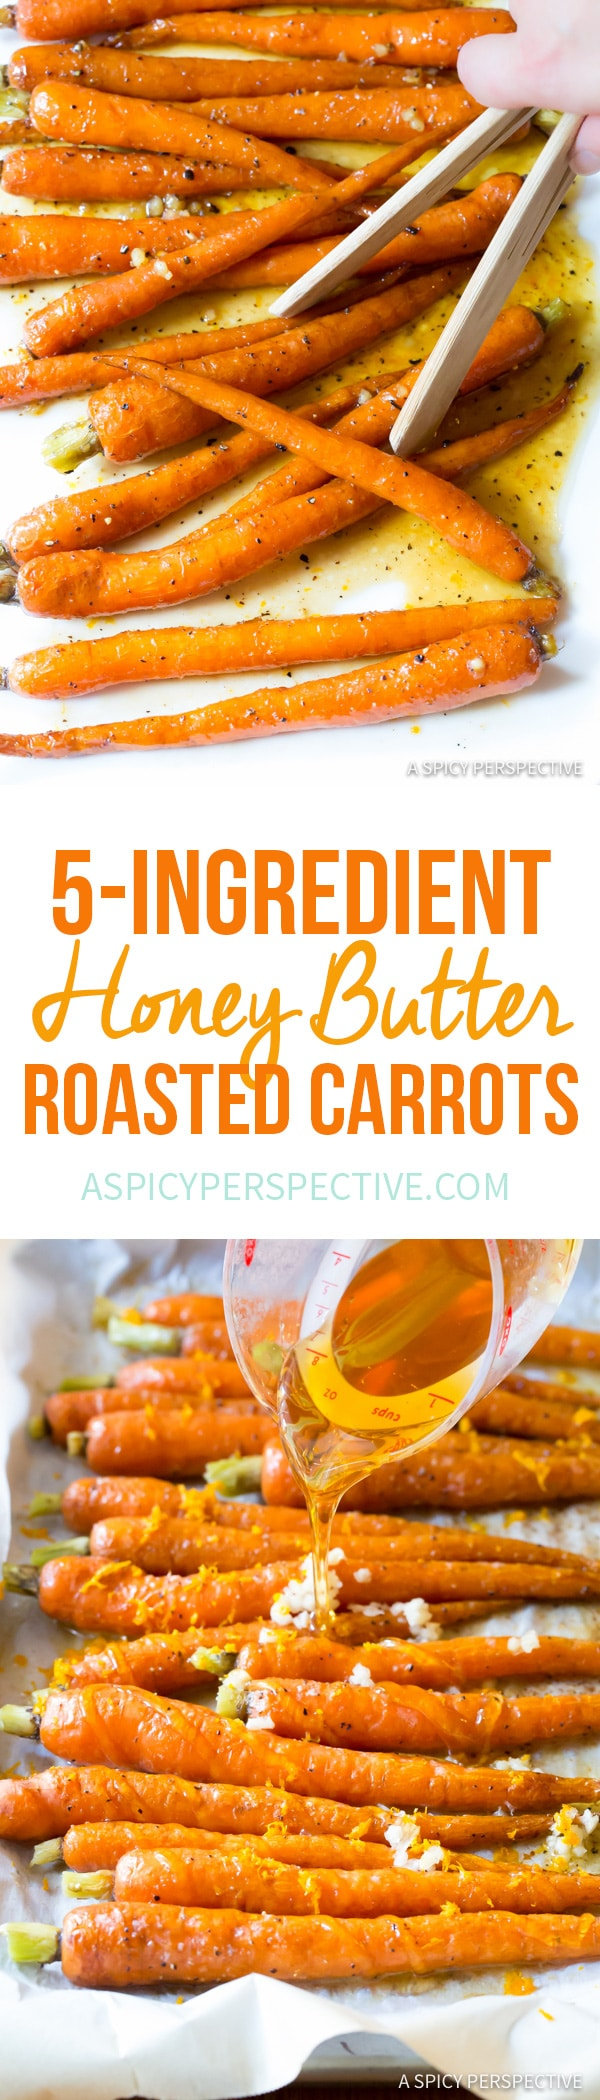 5-Ingredient Honey Butter Roasted Carrots | ASpicyPerspective.com #holiday